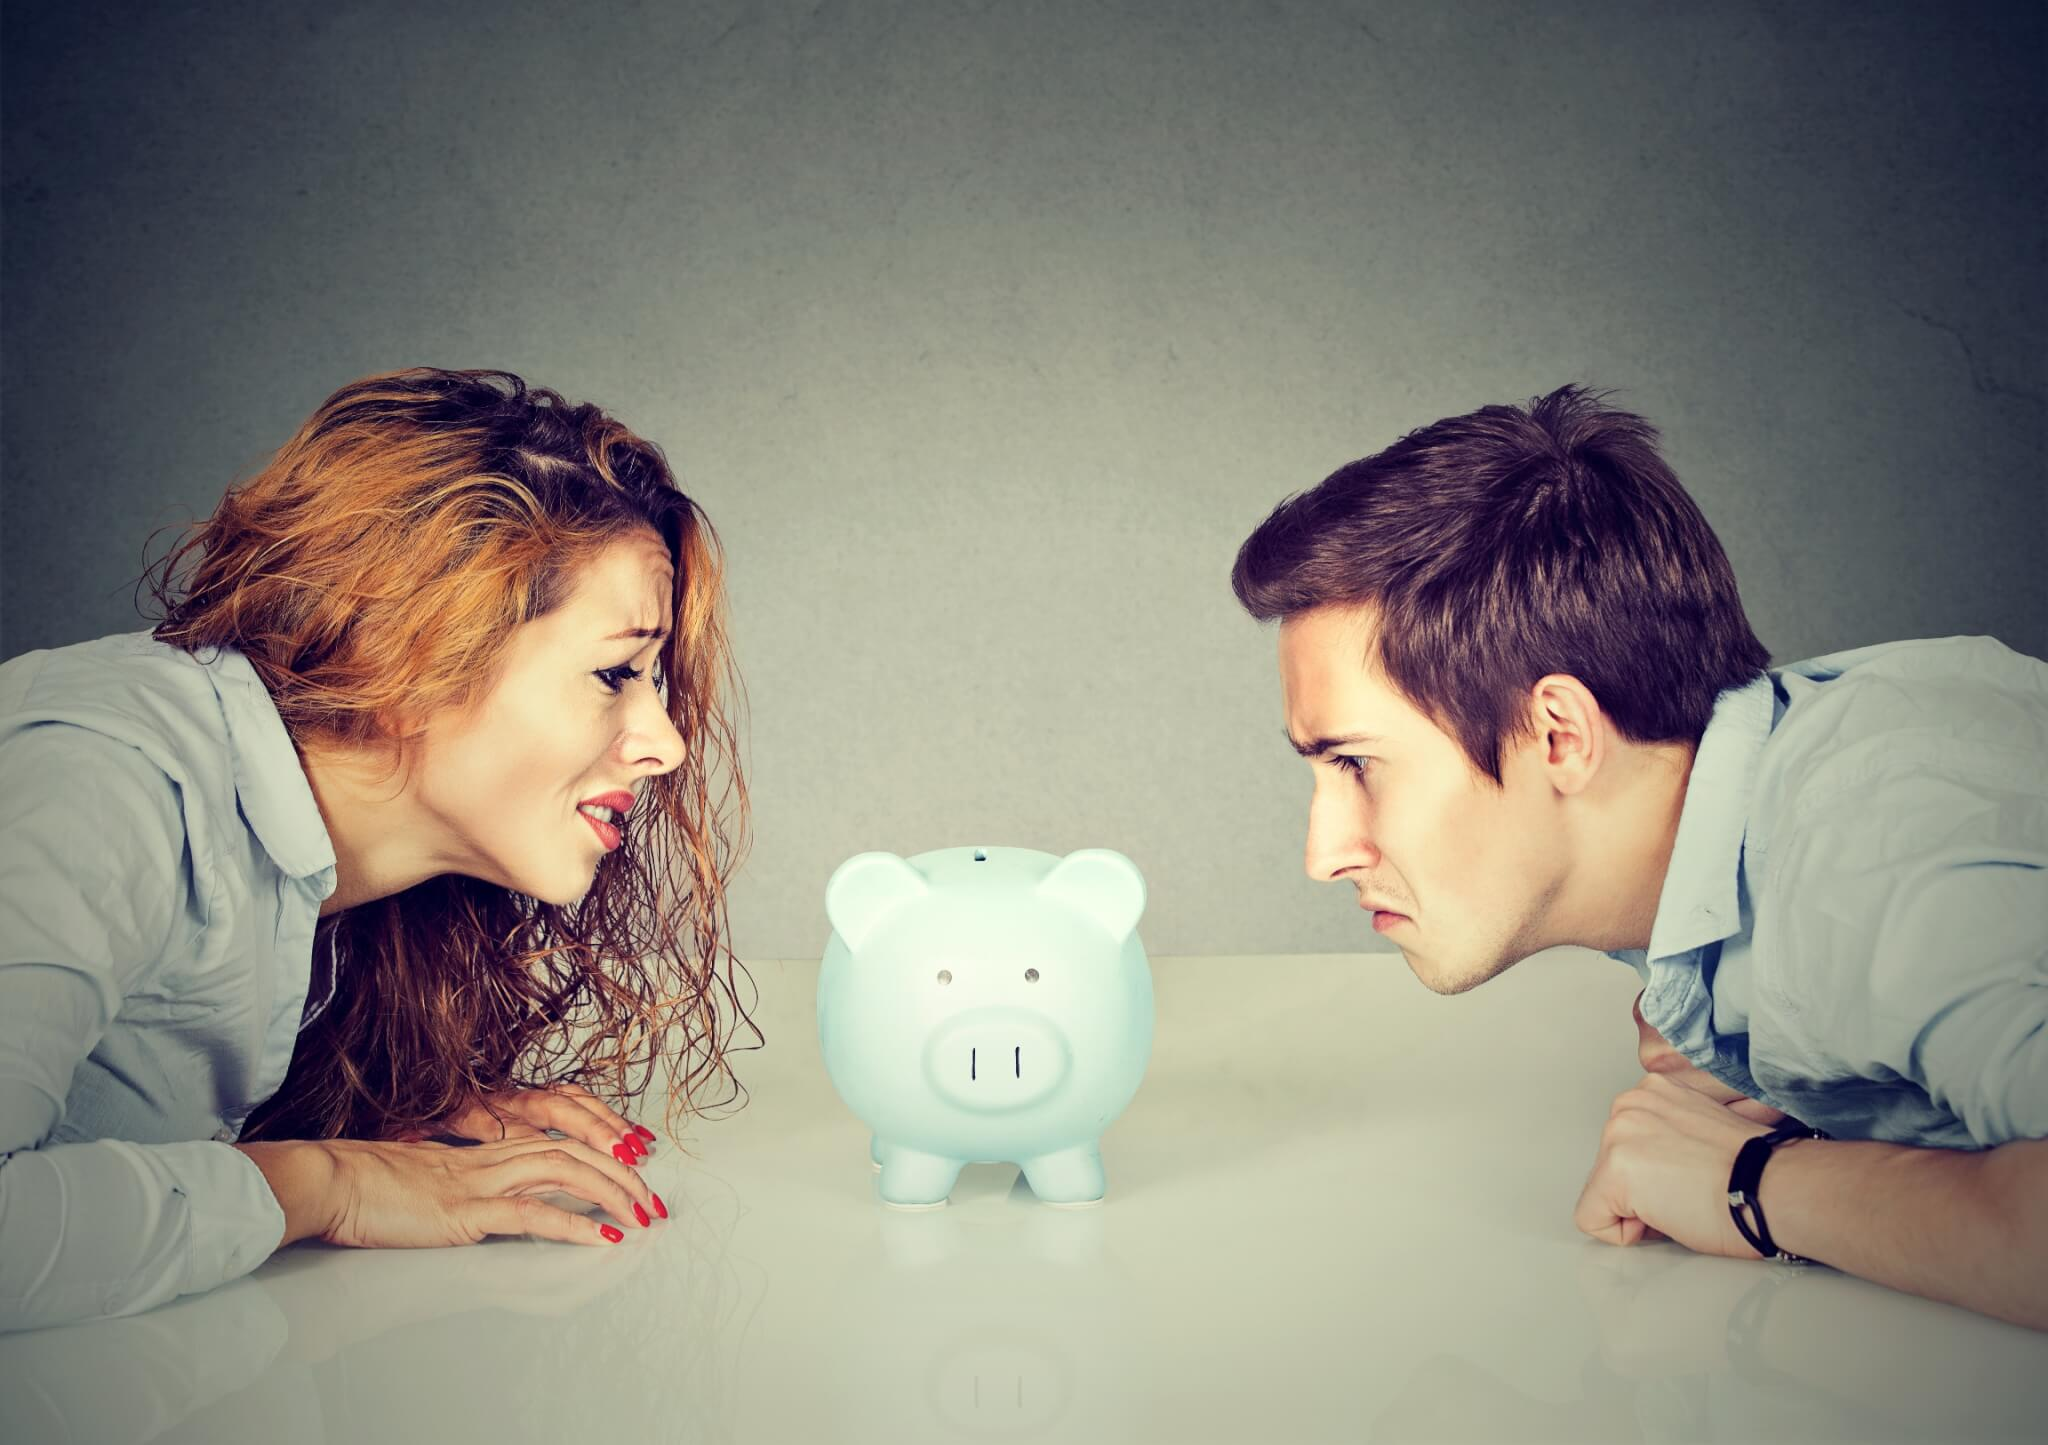 Is my spouse entitled to share my bonuses if we divorce?